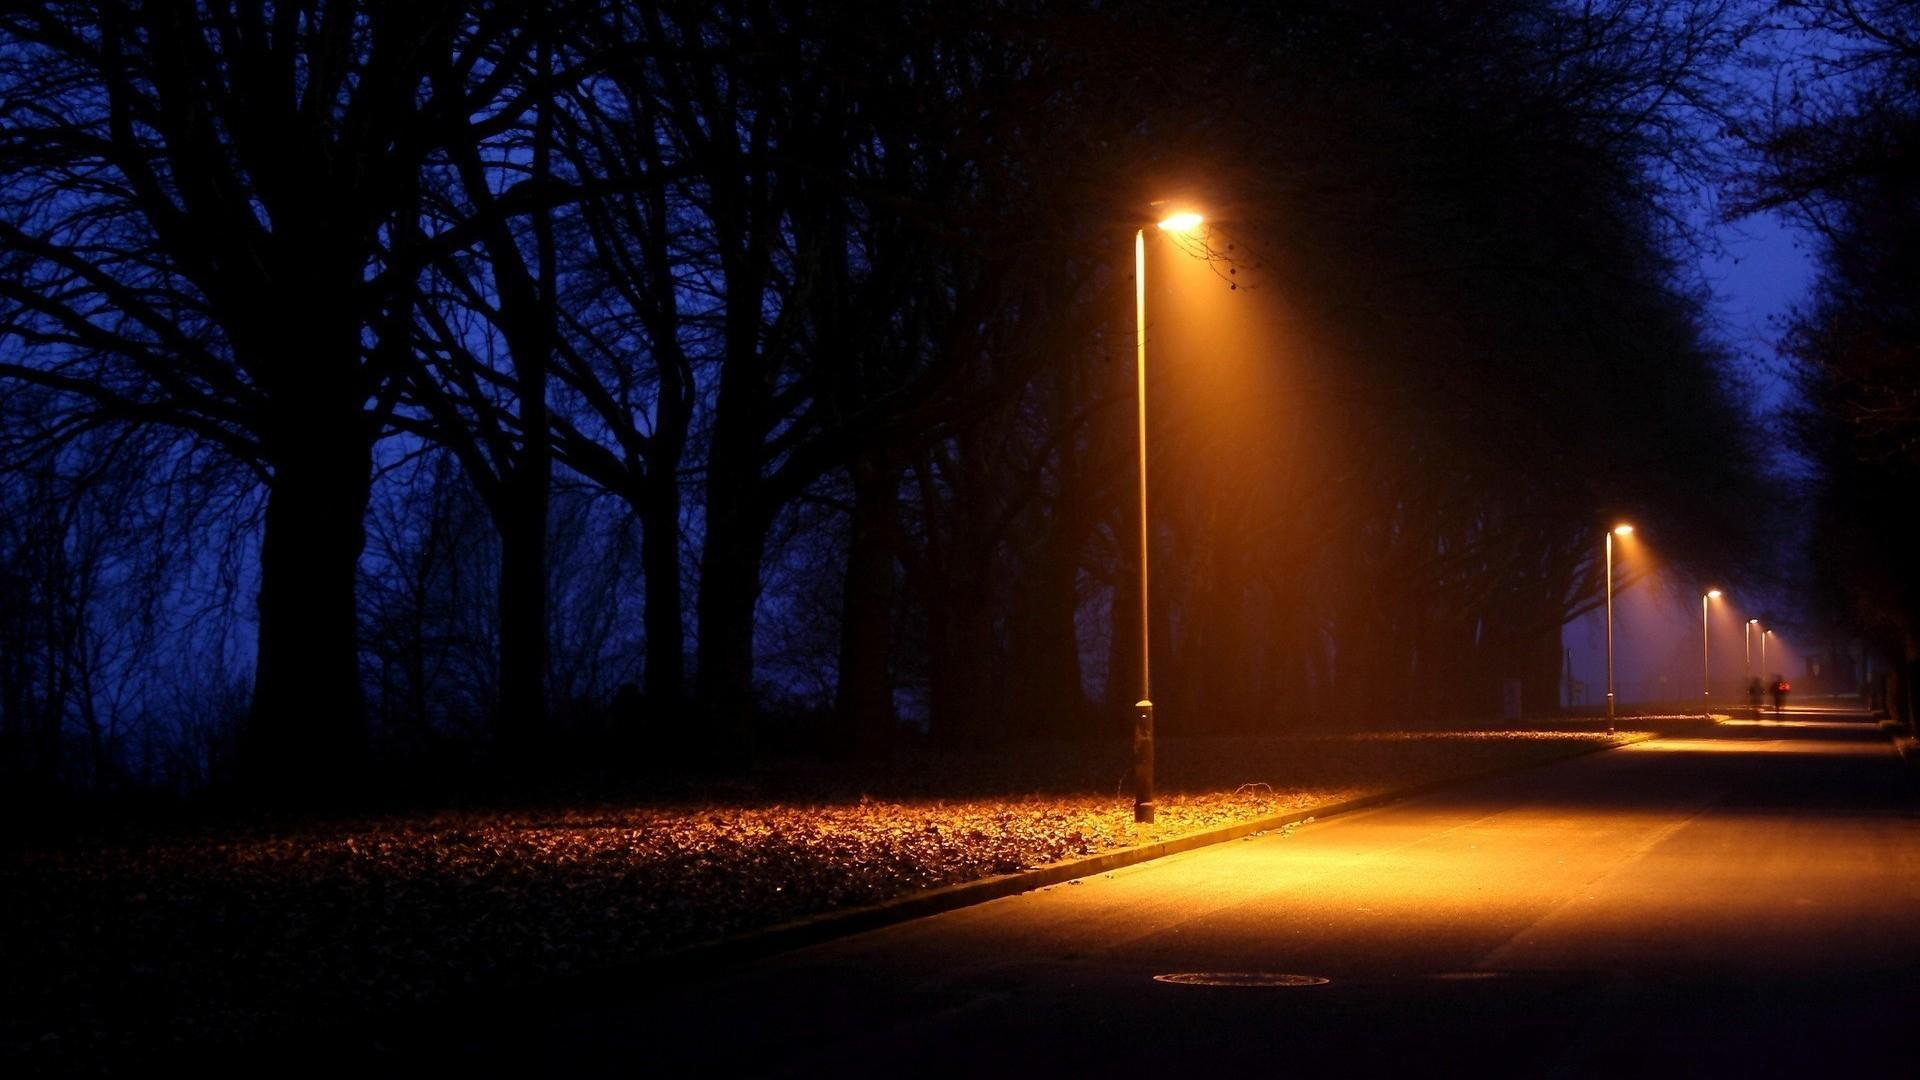 Night Road Wallpaper For Android Apk Download